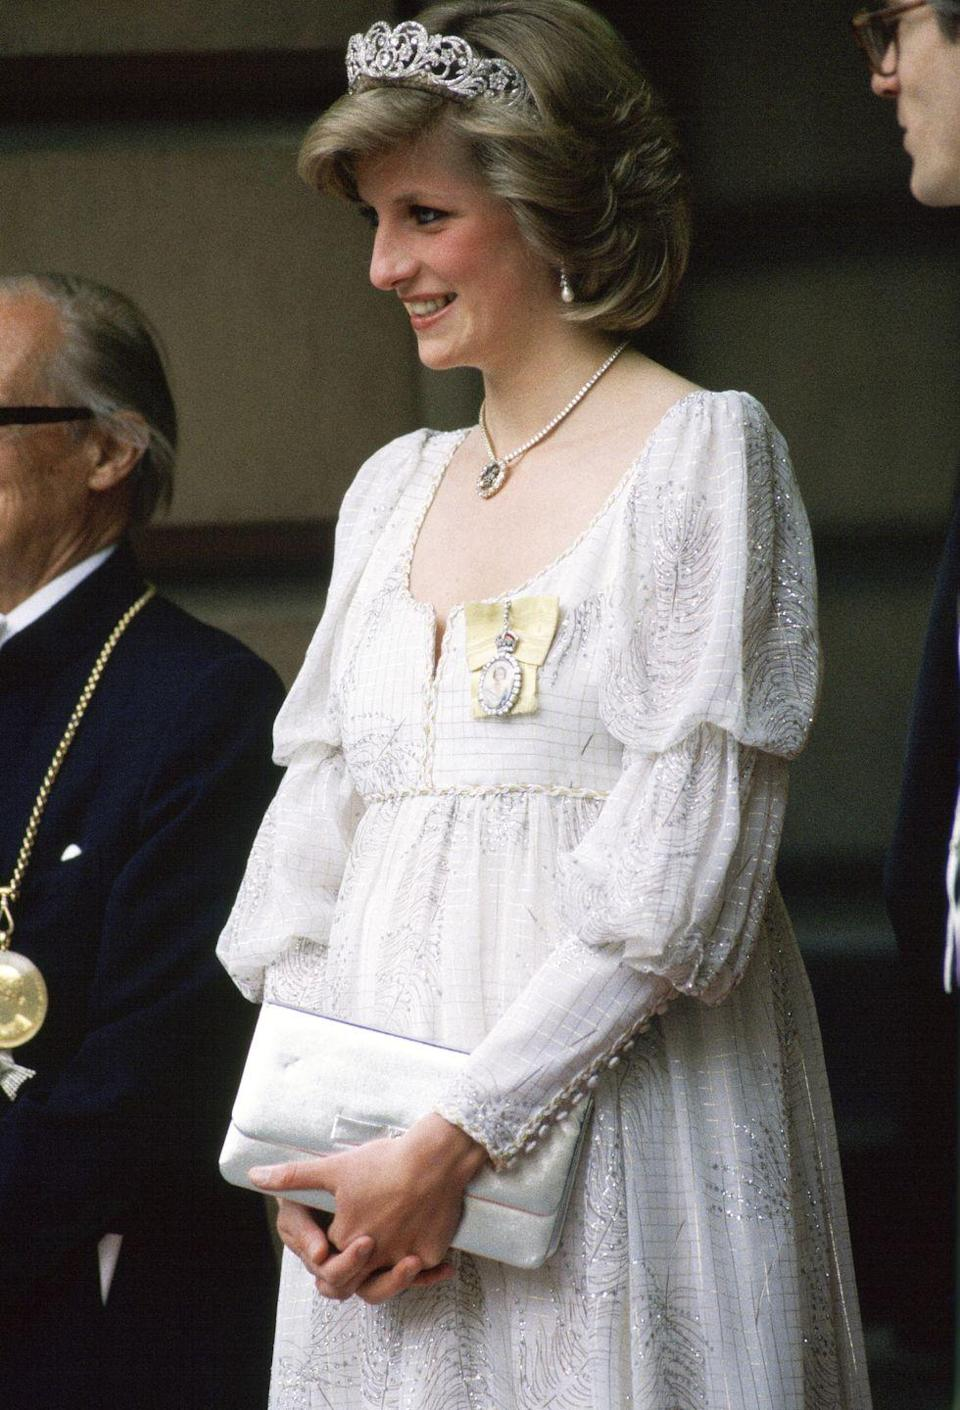 <p>While pregnant with Prince Harry, Diana glowed at an event hosted at the Royal Academy. The princess chose a white maternity dress with dramatic sleeves, the Spencer family tiara, and the Prince of Wales Feathers Pendant.</p>